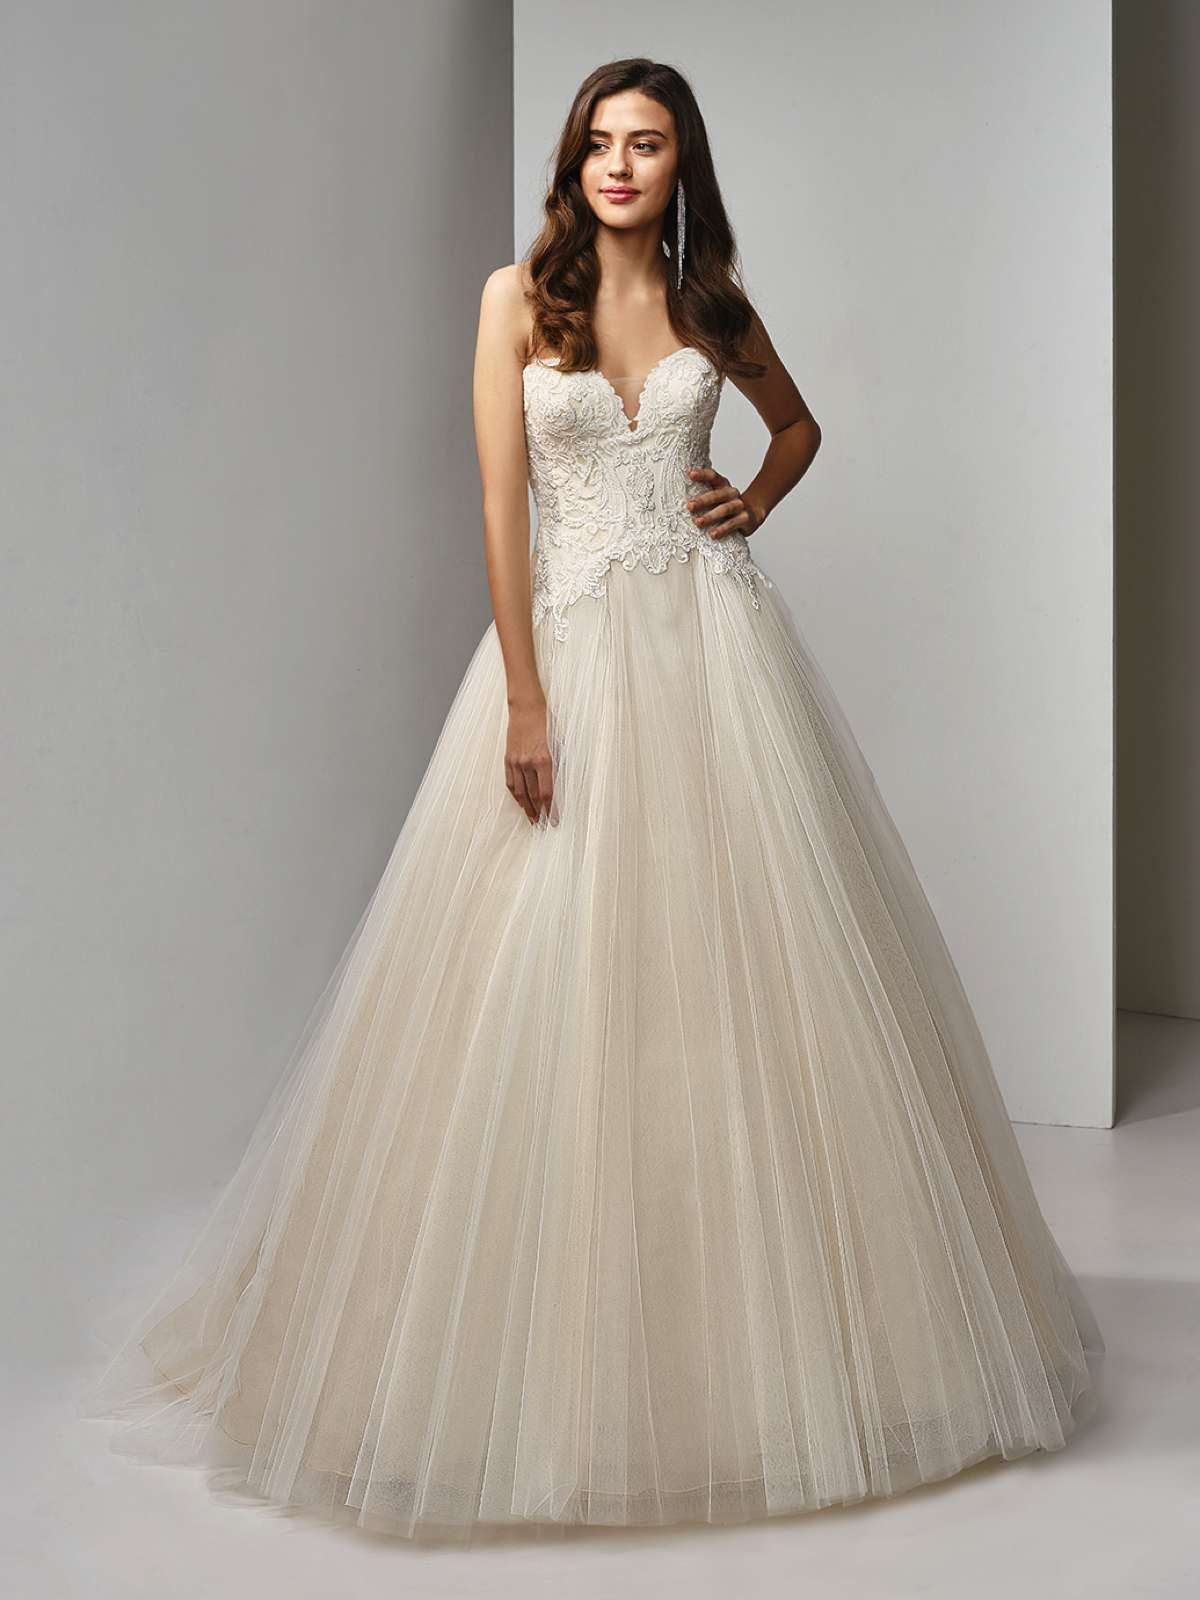 4c7d1a75ba47 BT19-21 by Beautiful by Enzoani - Find Your Dream Dress